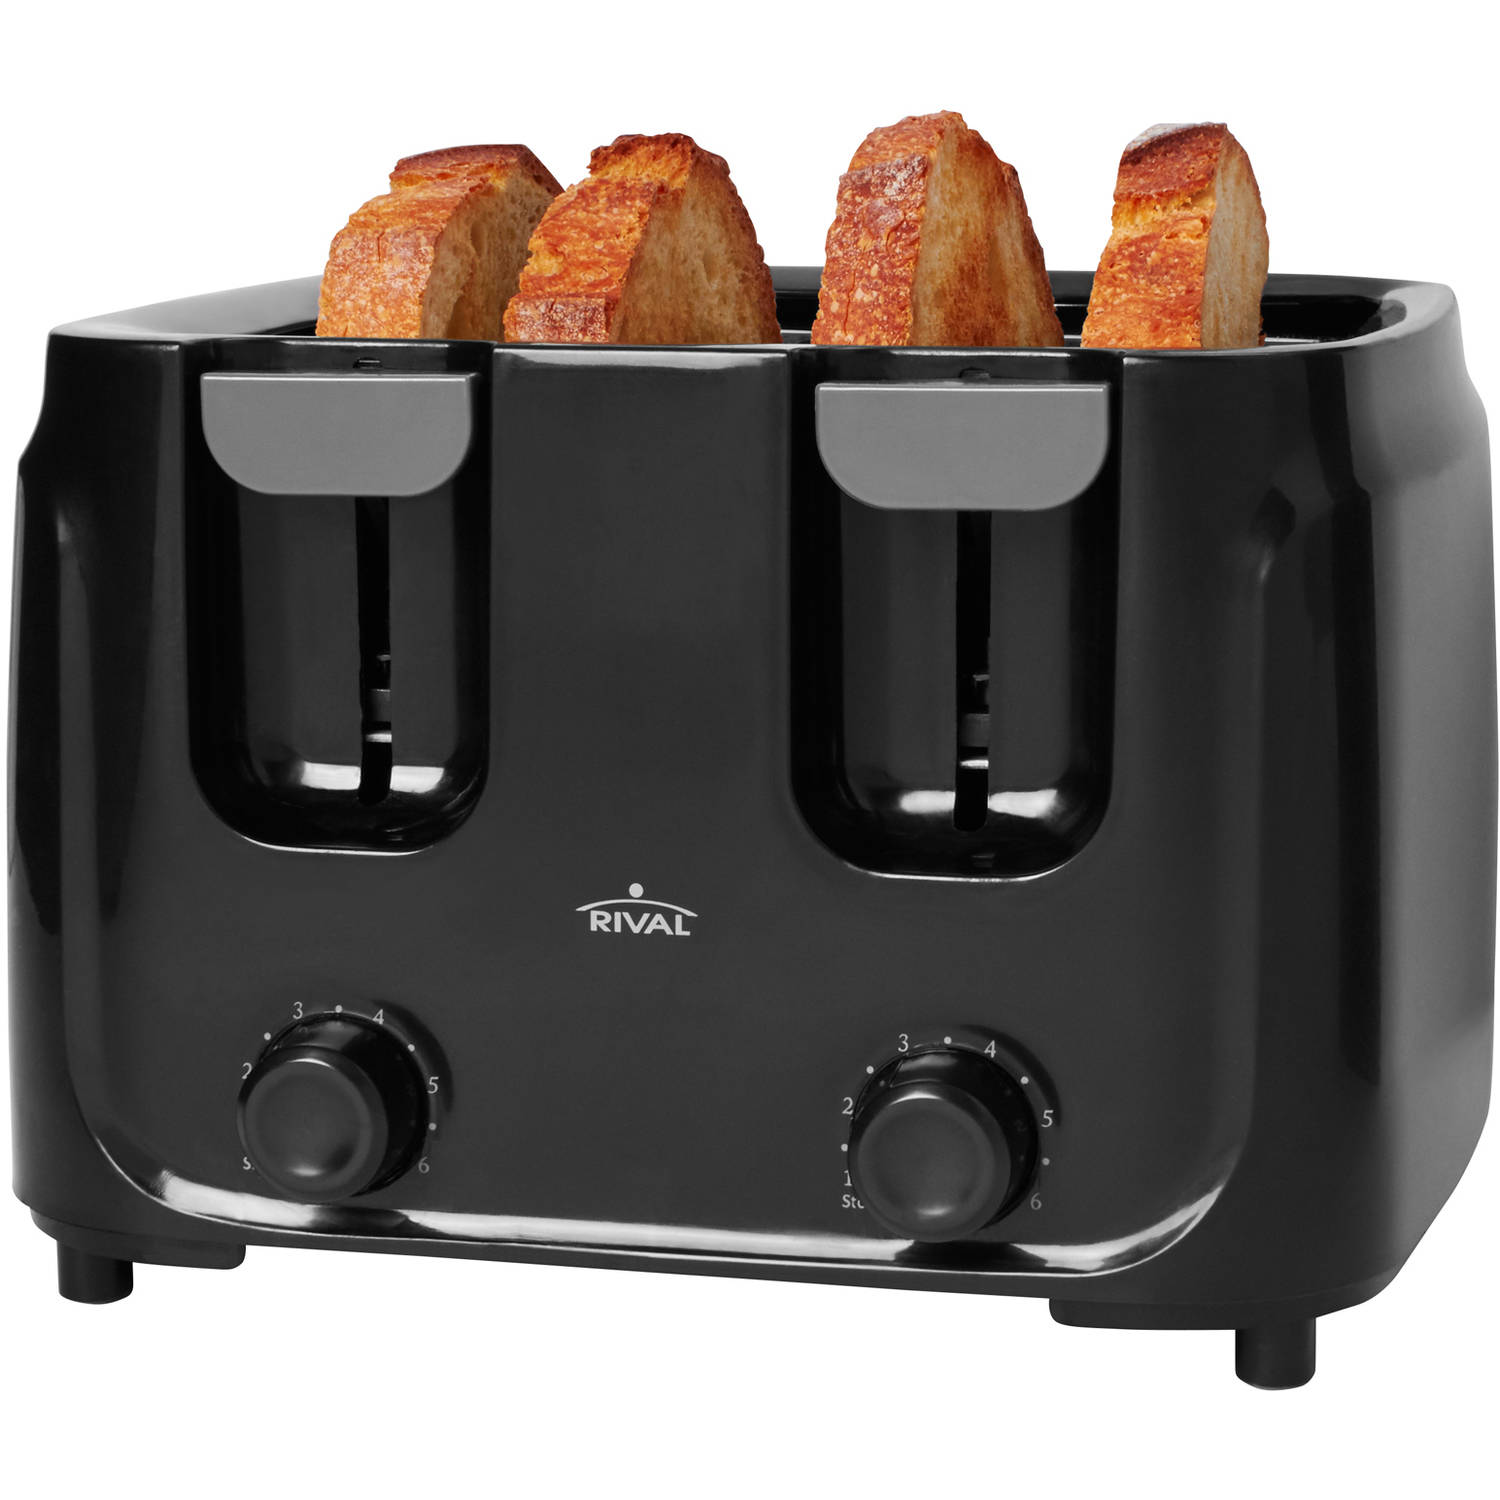 Rival 4-Slice Toaster, Black